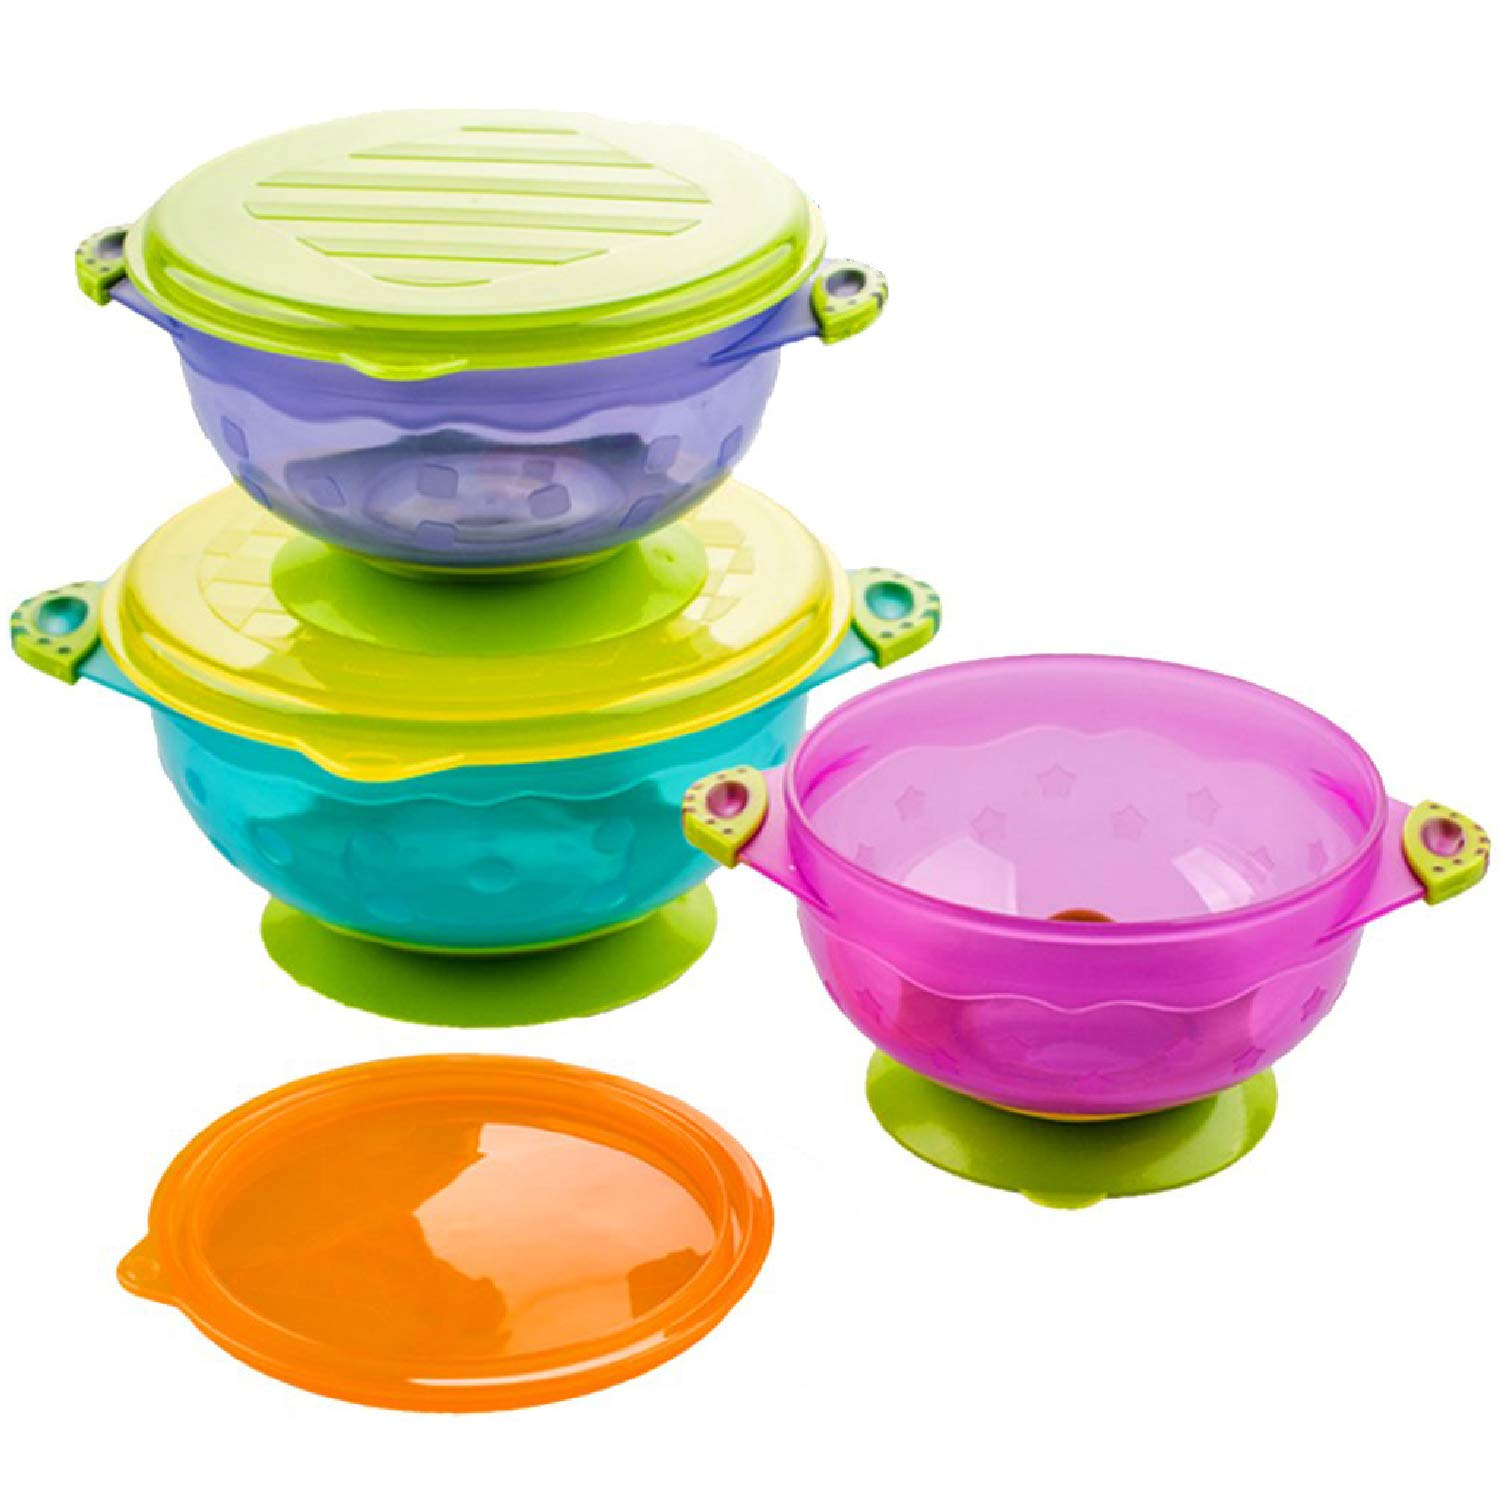 Silikong Suction Bowls for Toddlers, BPA Free, Dishwasher and Microwave Safe. Stay Put Dishes for Kids, Babies and Infants. 3 Pack